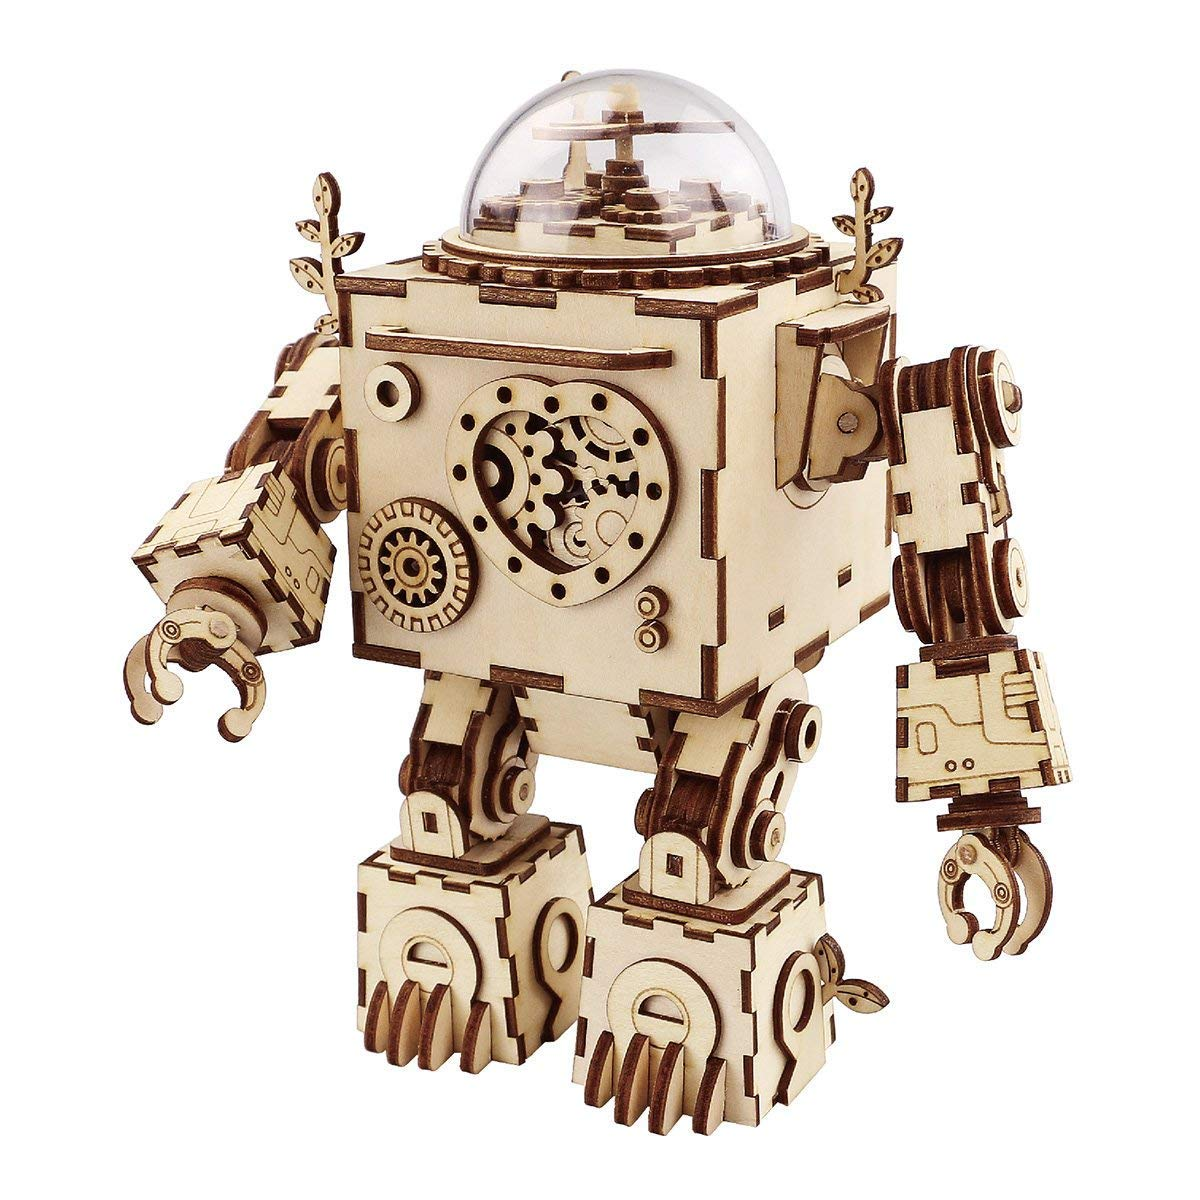 Think Gizmos Musical Robot Kit TG714 - Build Your Own Robot Science Kit with Musical Effects for Adults & Kids Aged 12+